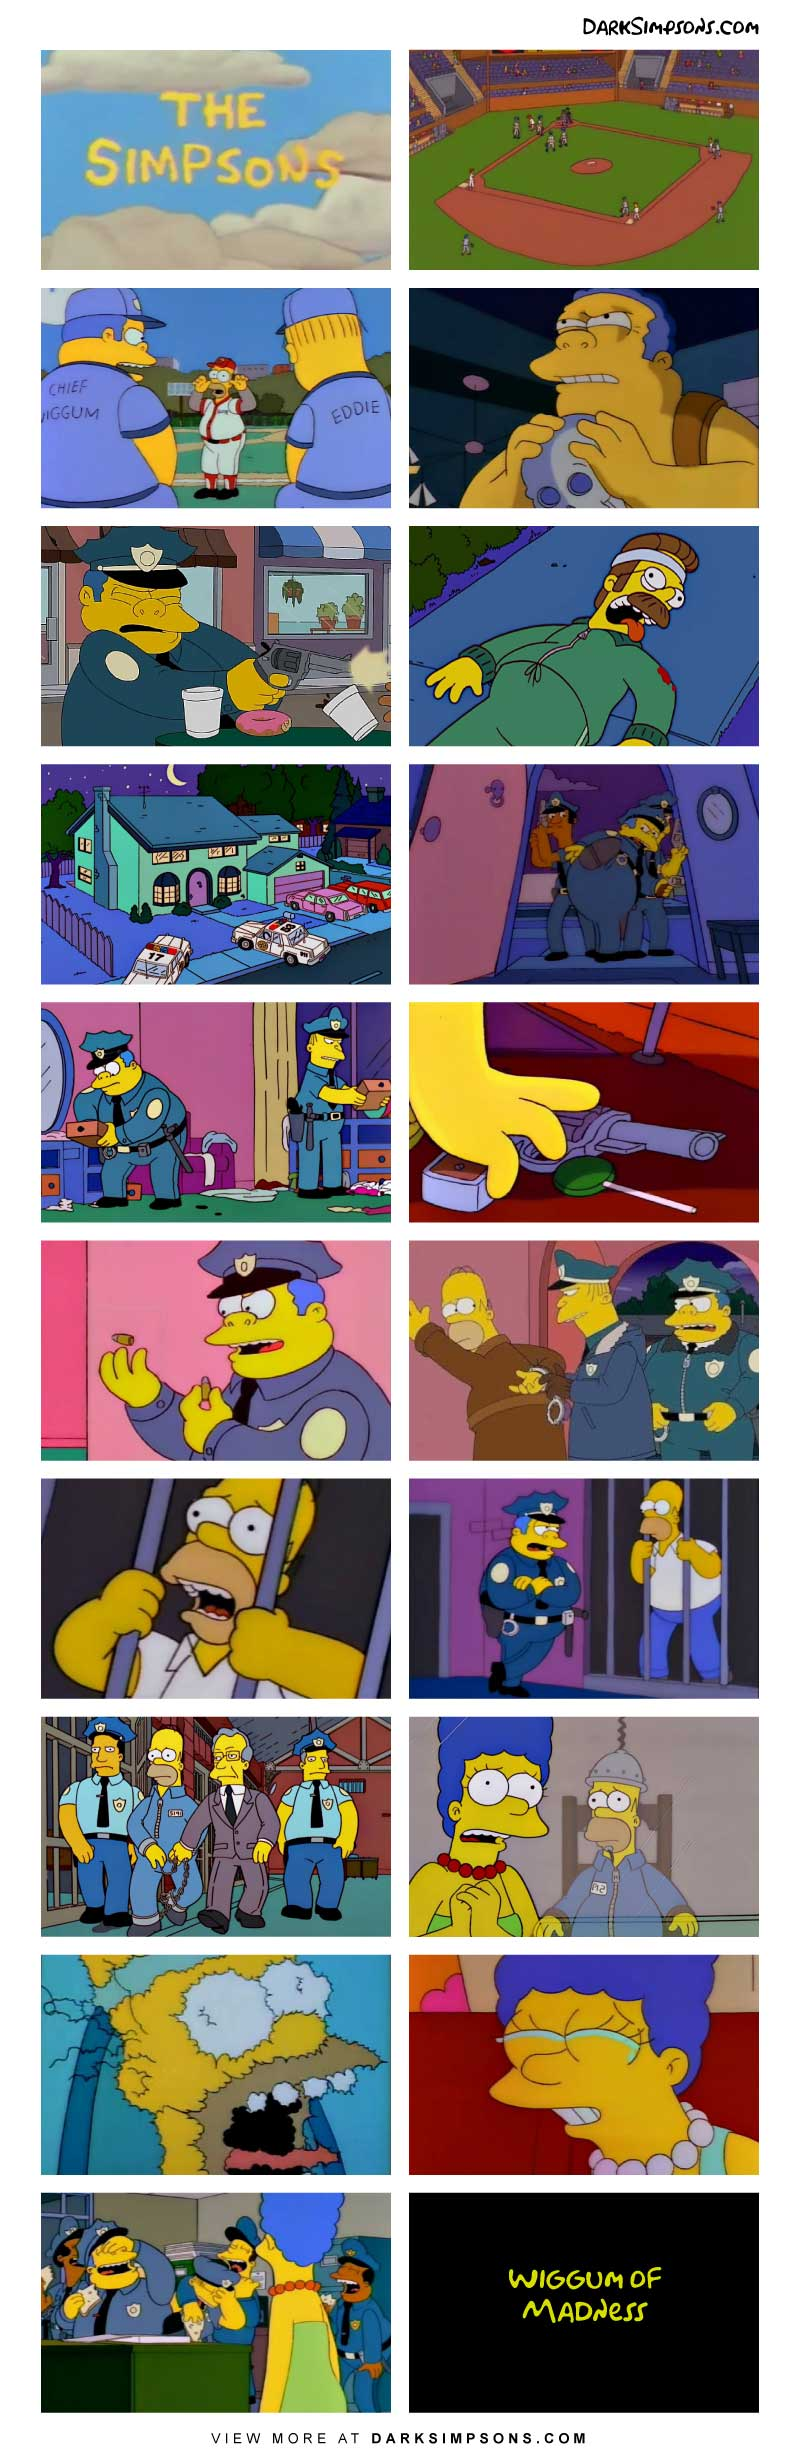 Wiggum has gone made with power! After a loss to the power plant in their recreational baseball league, Homer mocks Chief Wiggum and that pushes Wiggum over the edge.